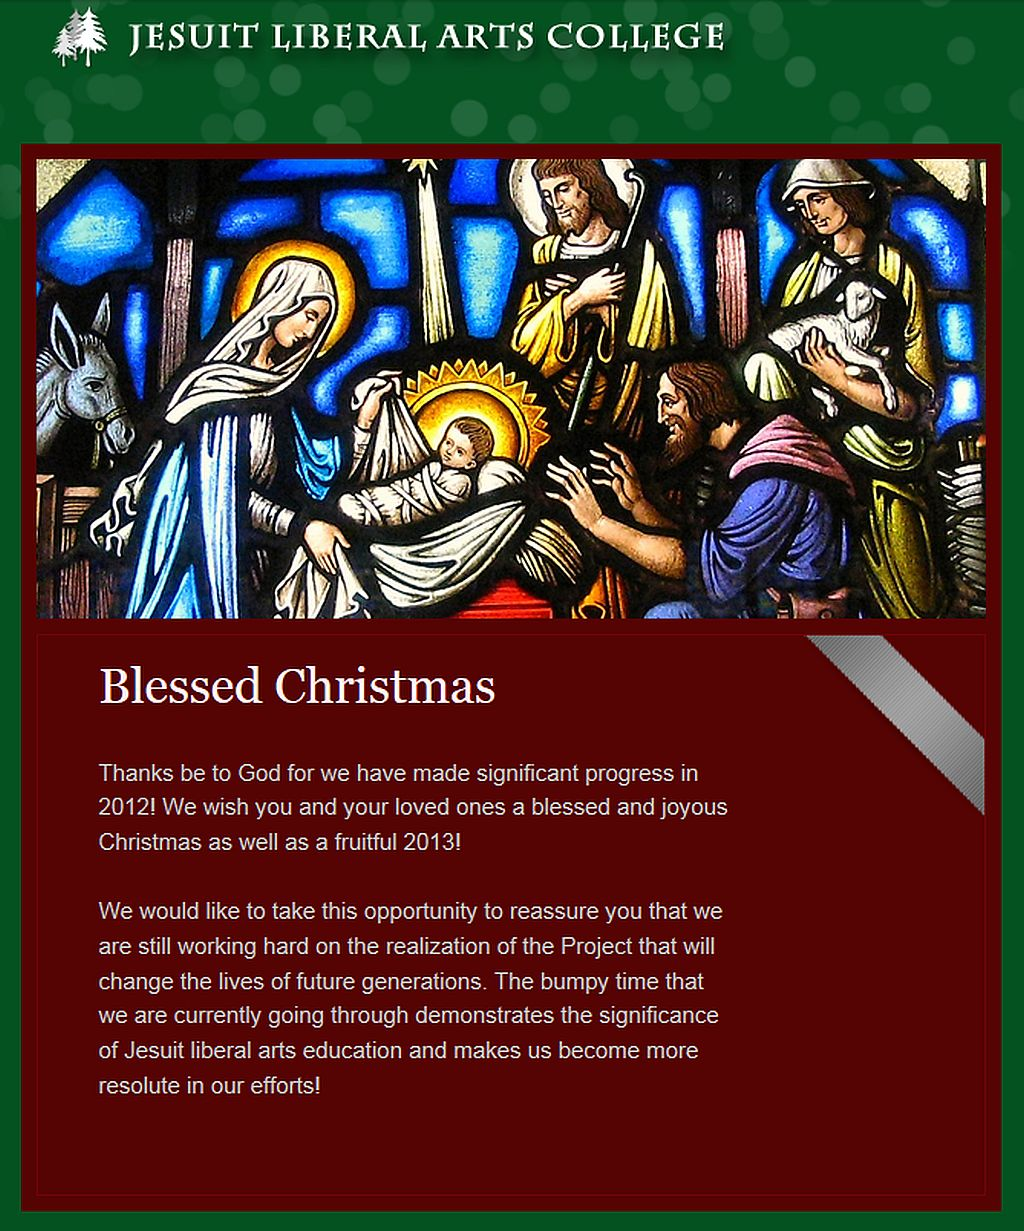 Christmas greetings from fr chow and jesuit liberal arts college kristyandbryce Images